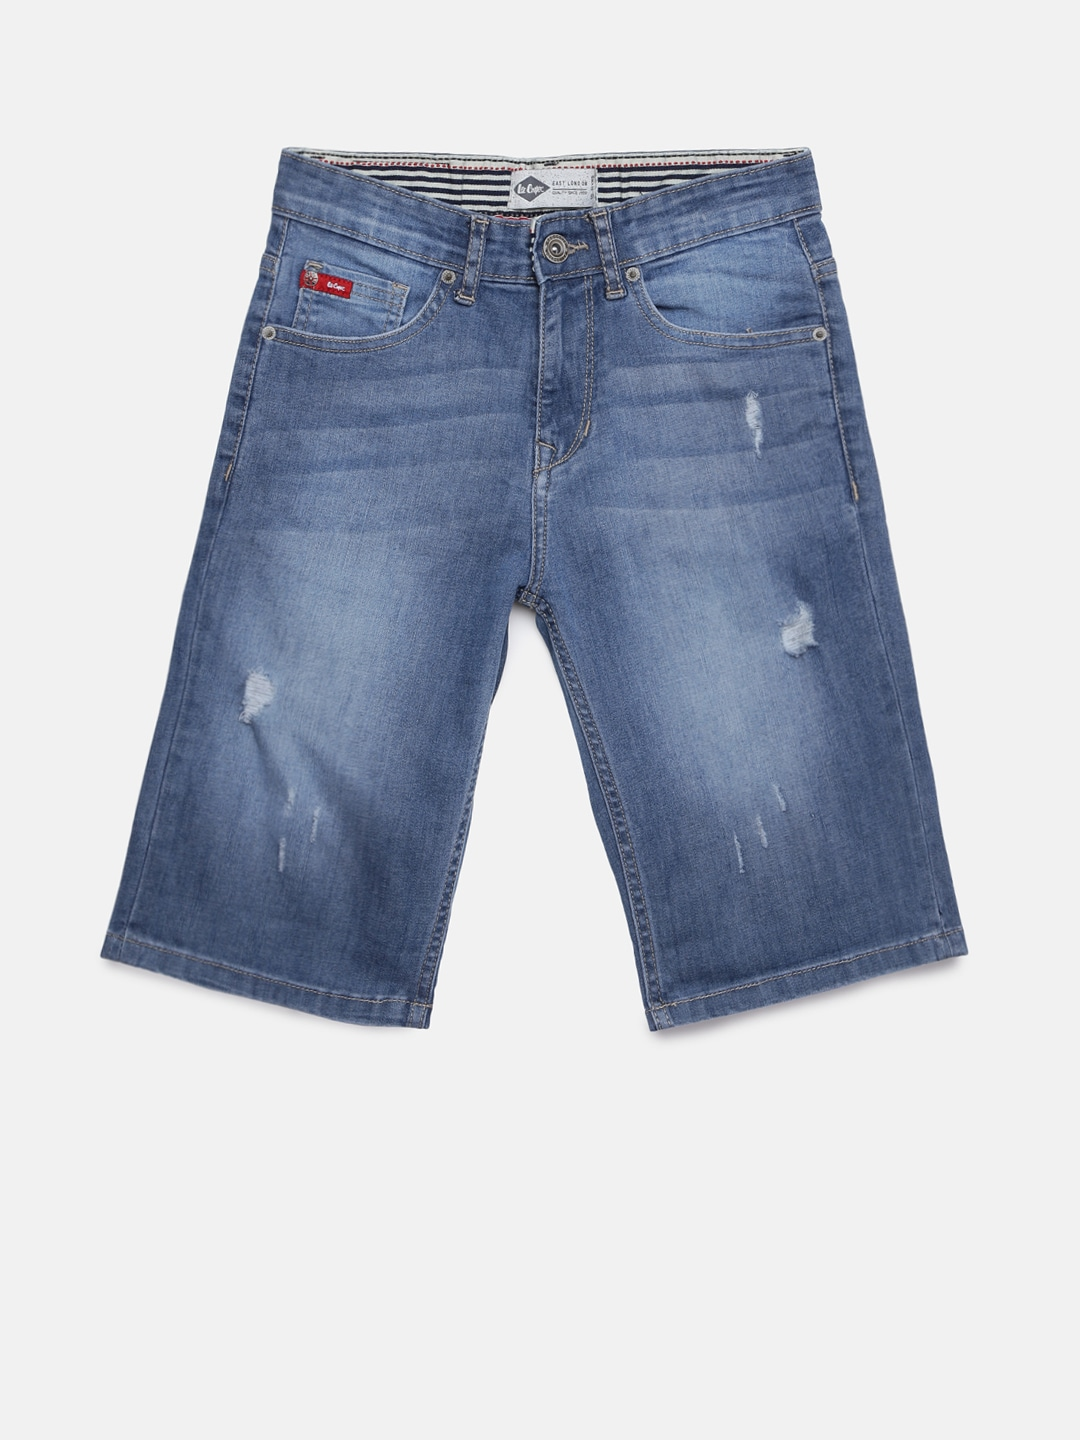 8b23eeb8ab4 Lee Cooper For Kids - Buy Lee Cooper For Kids online in India